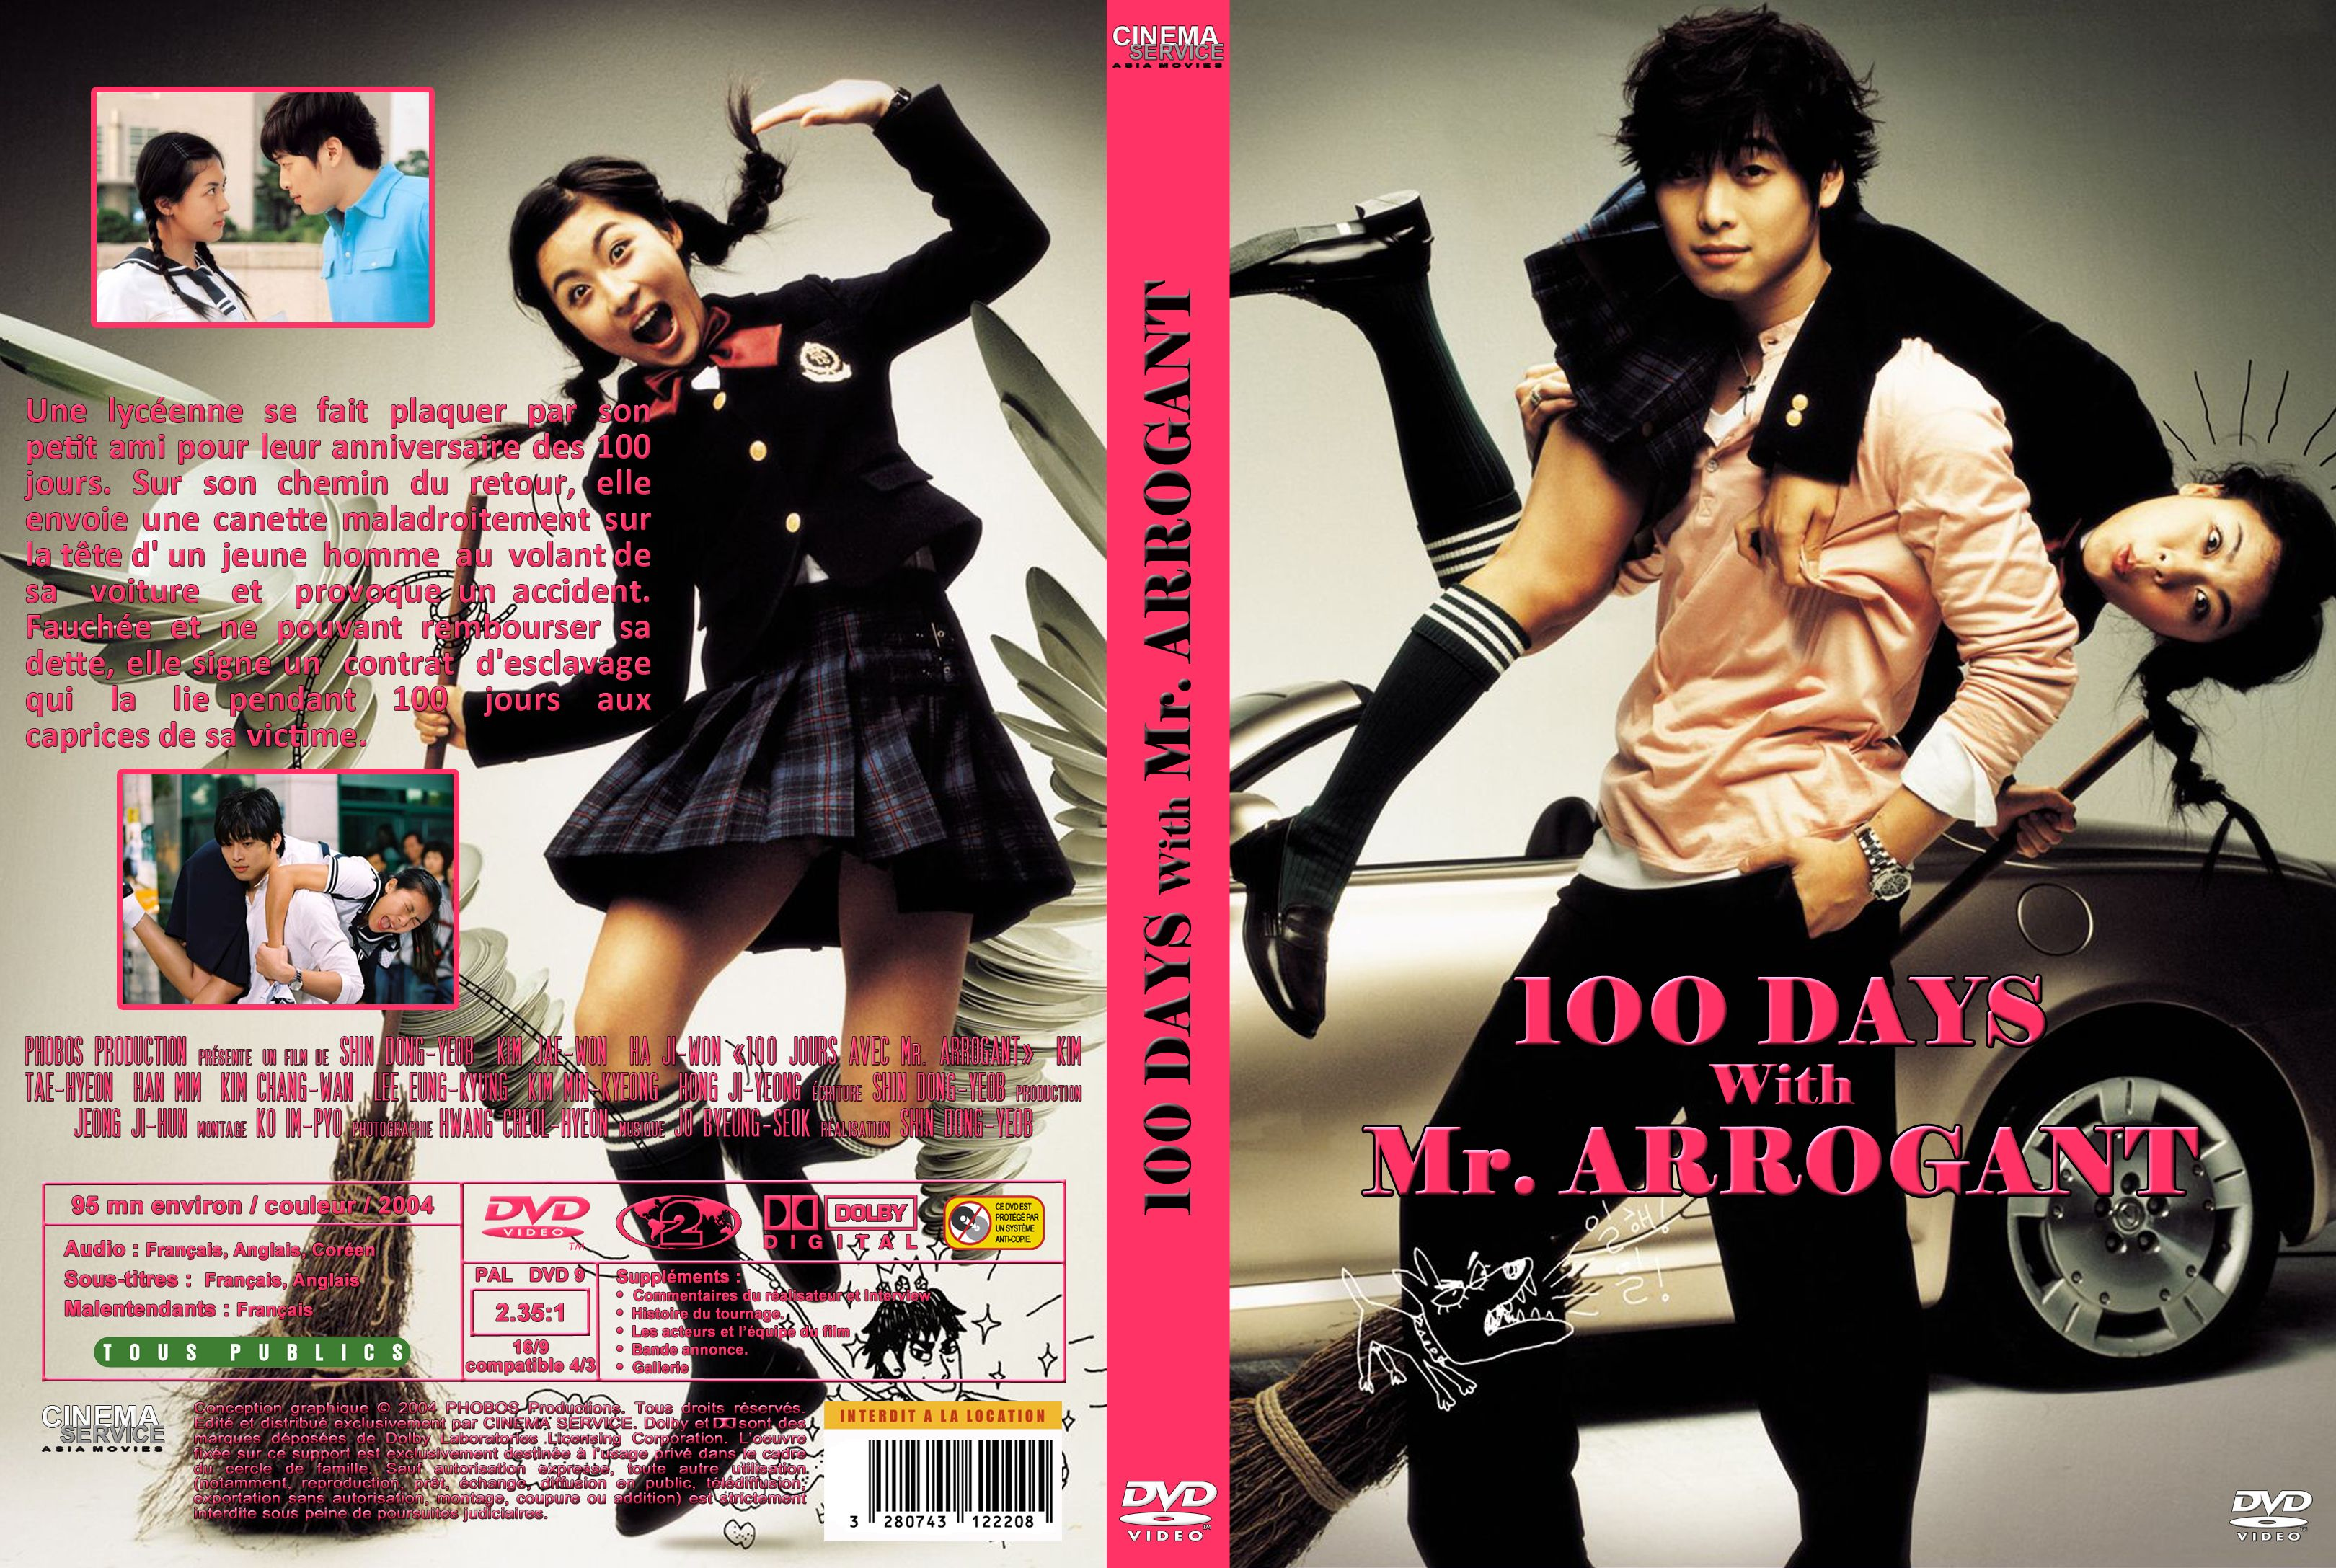 100 Days With Mr. Arrogant [내 사랑 싸가지] Comédie, Romance | A ... 100 Days With Mr Arrogant Kiss